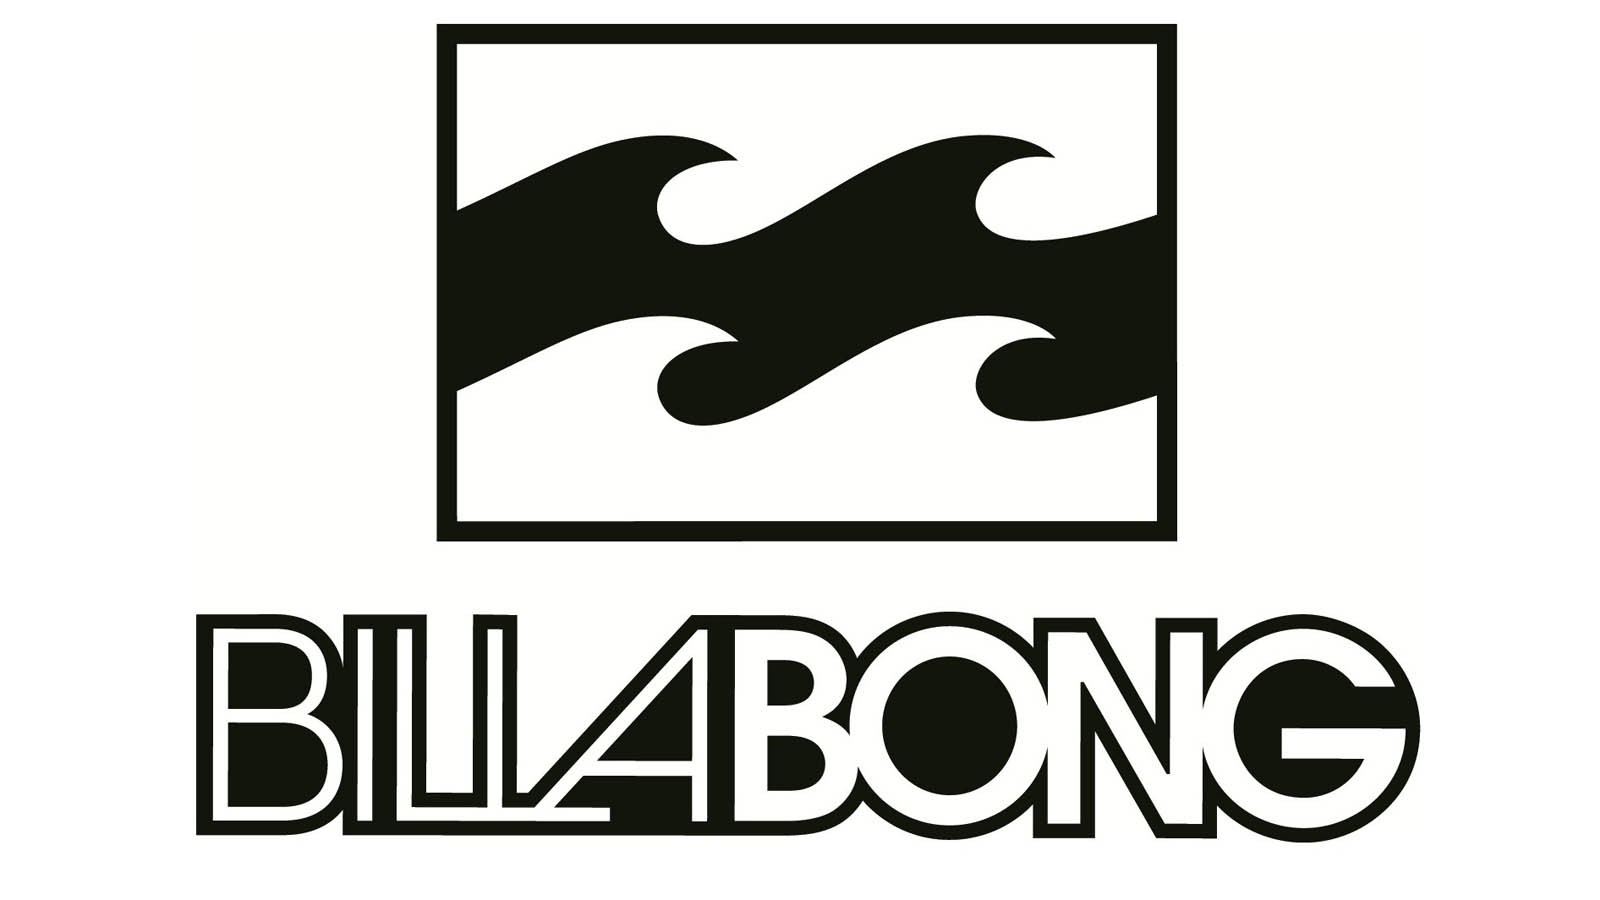 Billabong 169